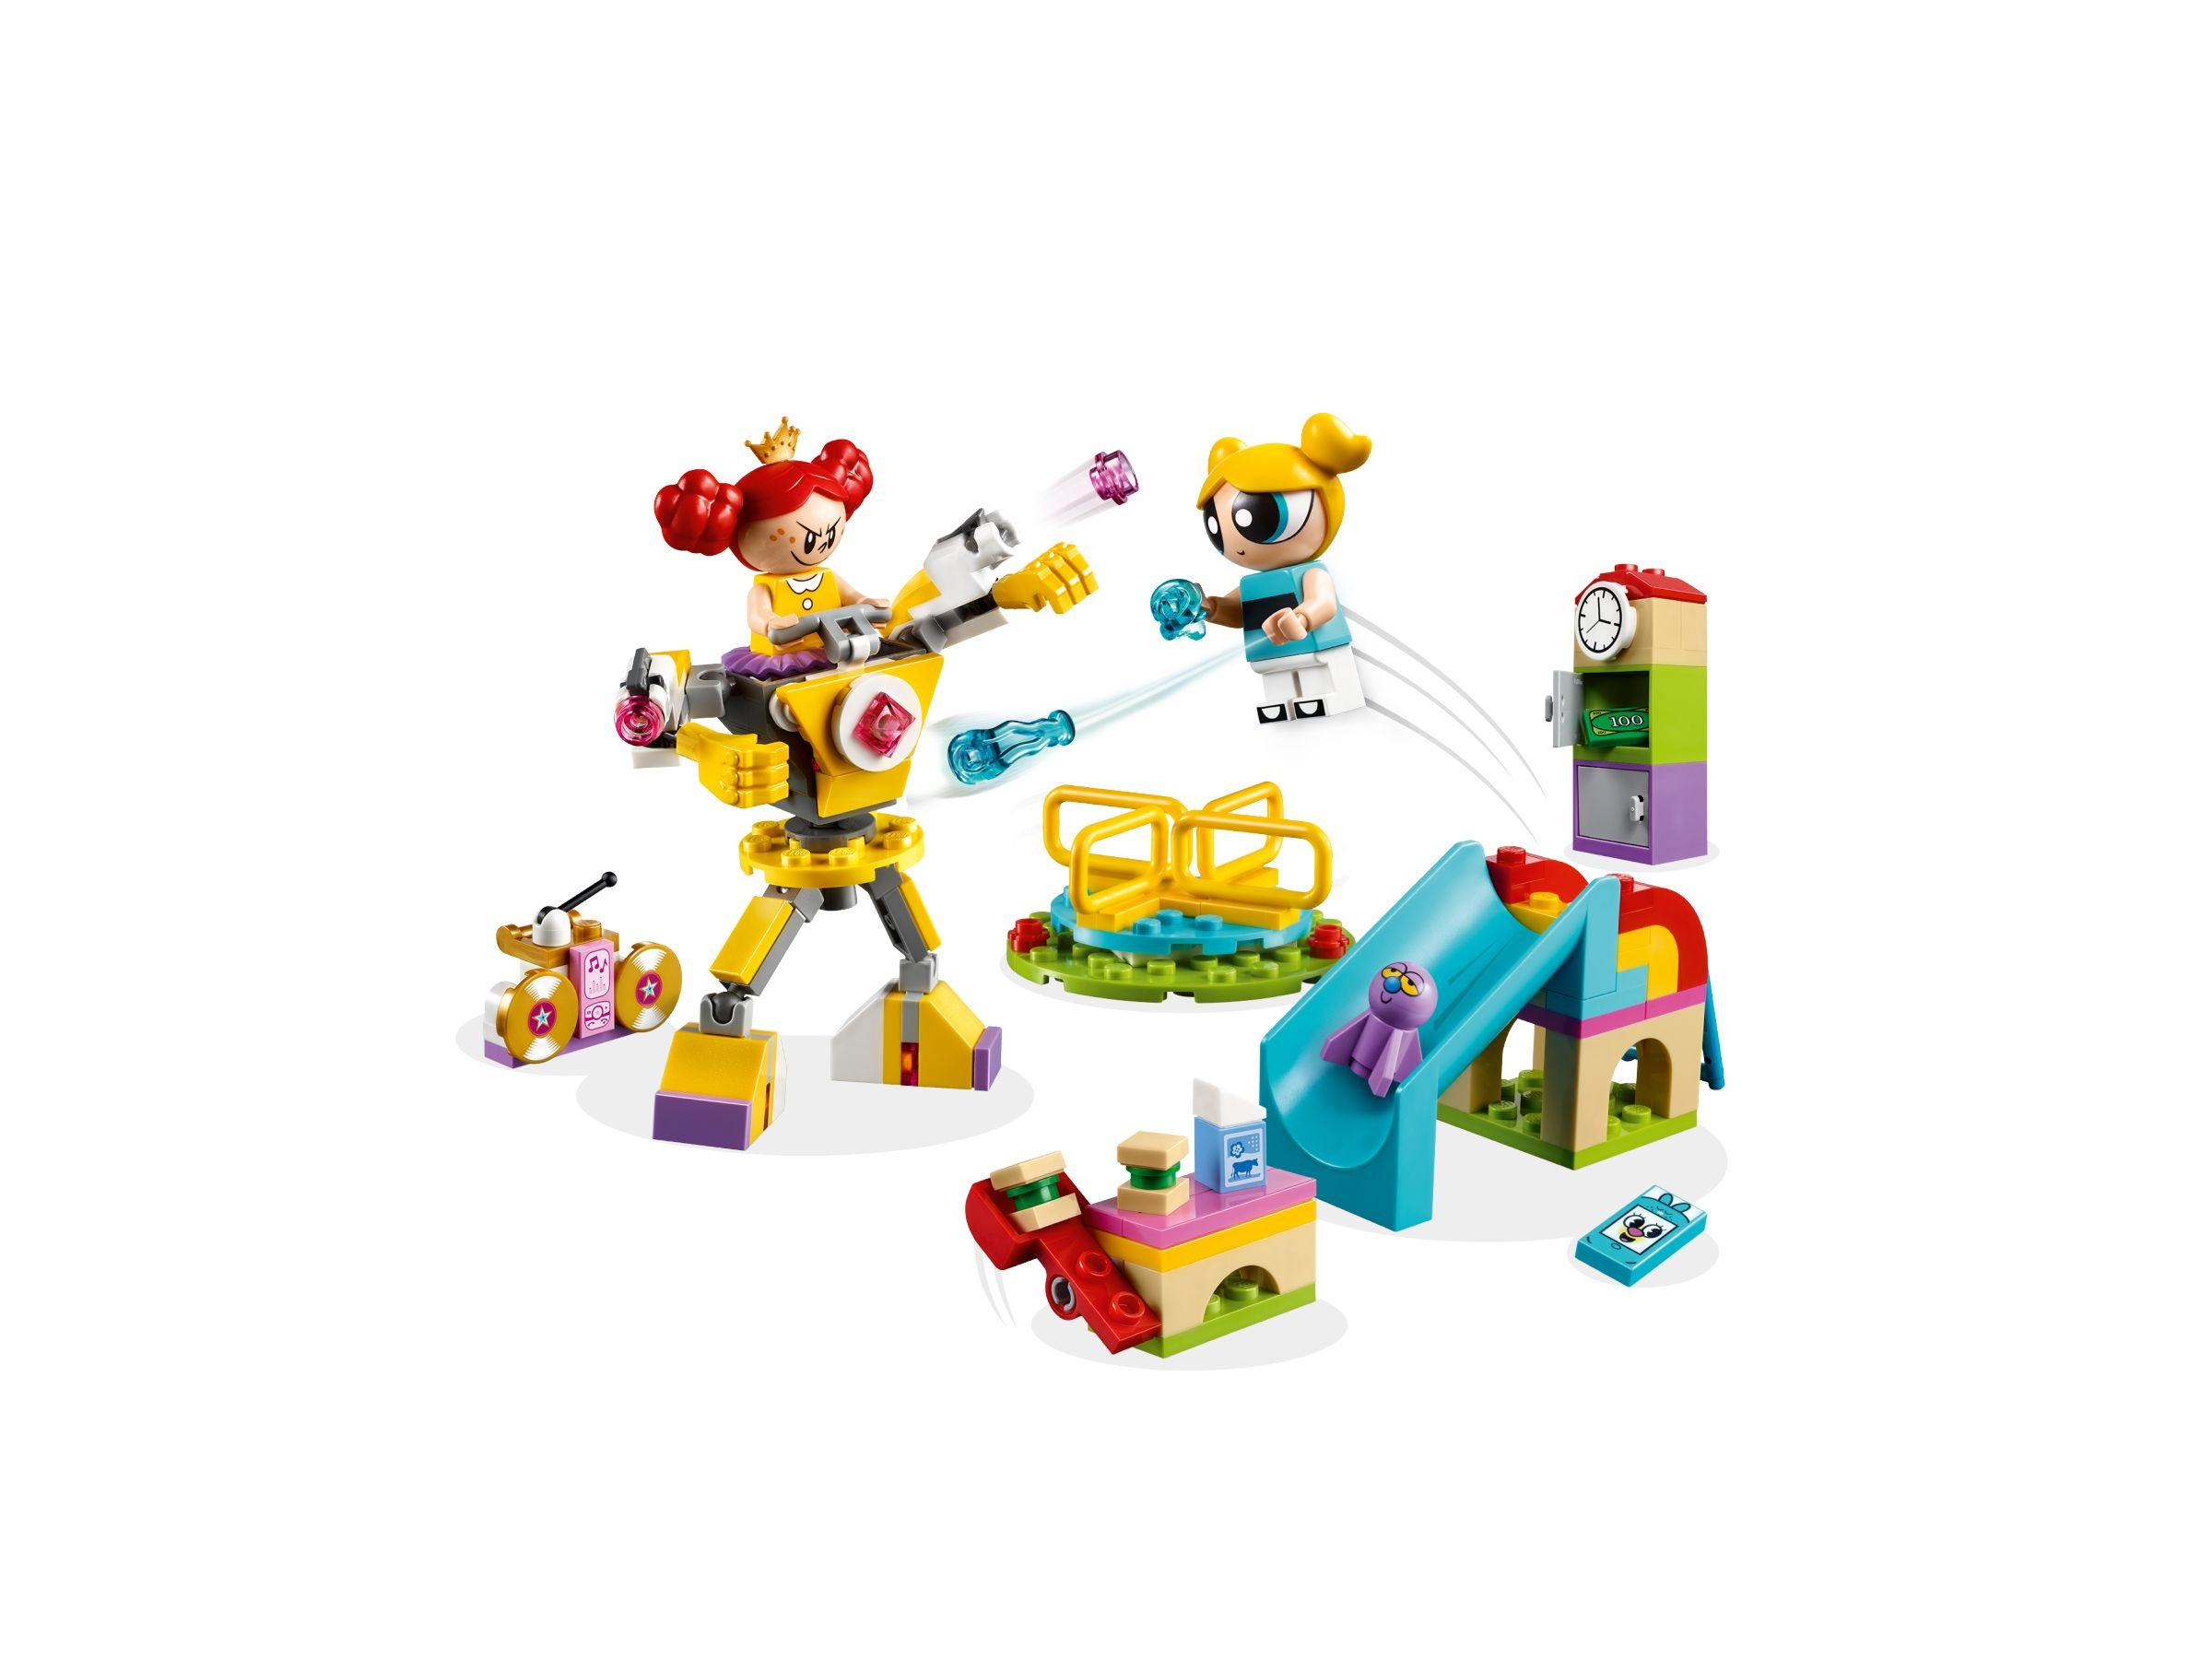 LEGO The Powerpuff Girls 41287 Bubbles' Spielplatzabenteuer LEGO_41287_alt2.jpg